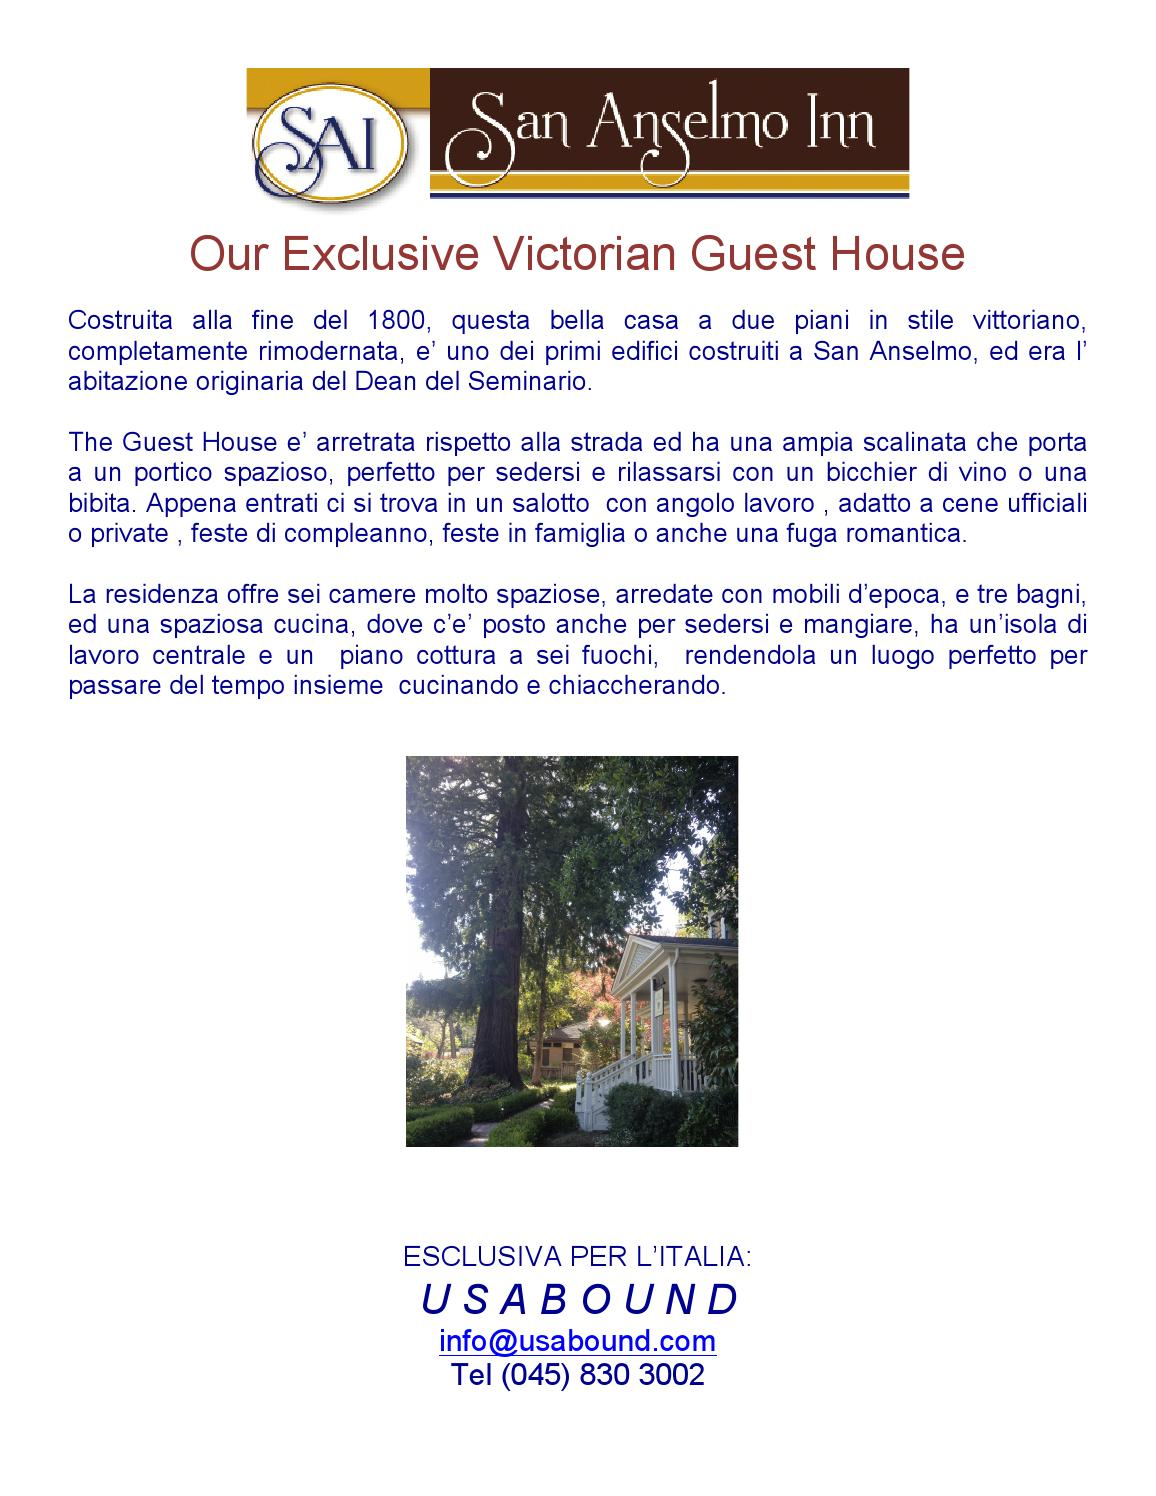 San anselmo guesthouse by usabound issuu for Avvolgere completamente intorno case di log portico